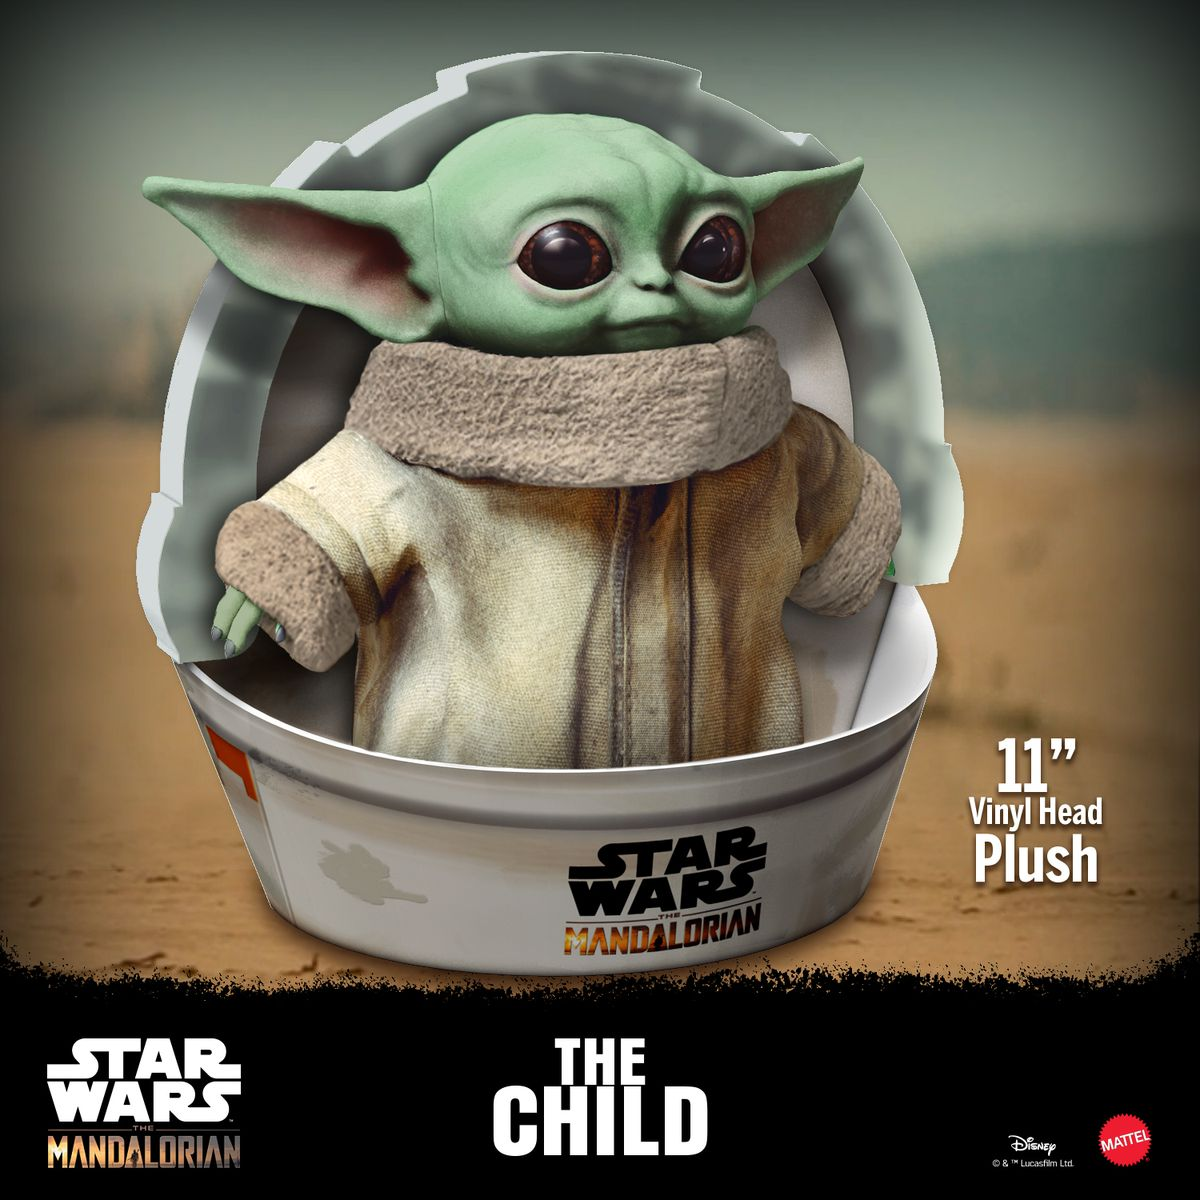 Walmart Removed Then Returned A Bizarre Baby Yoda Toy To